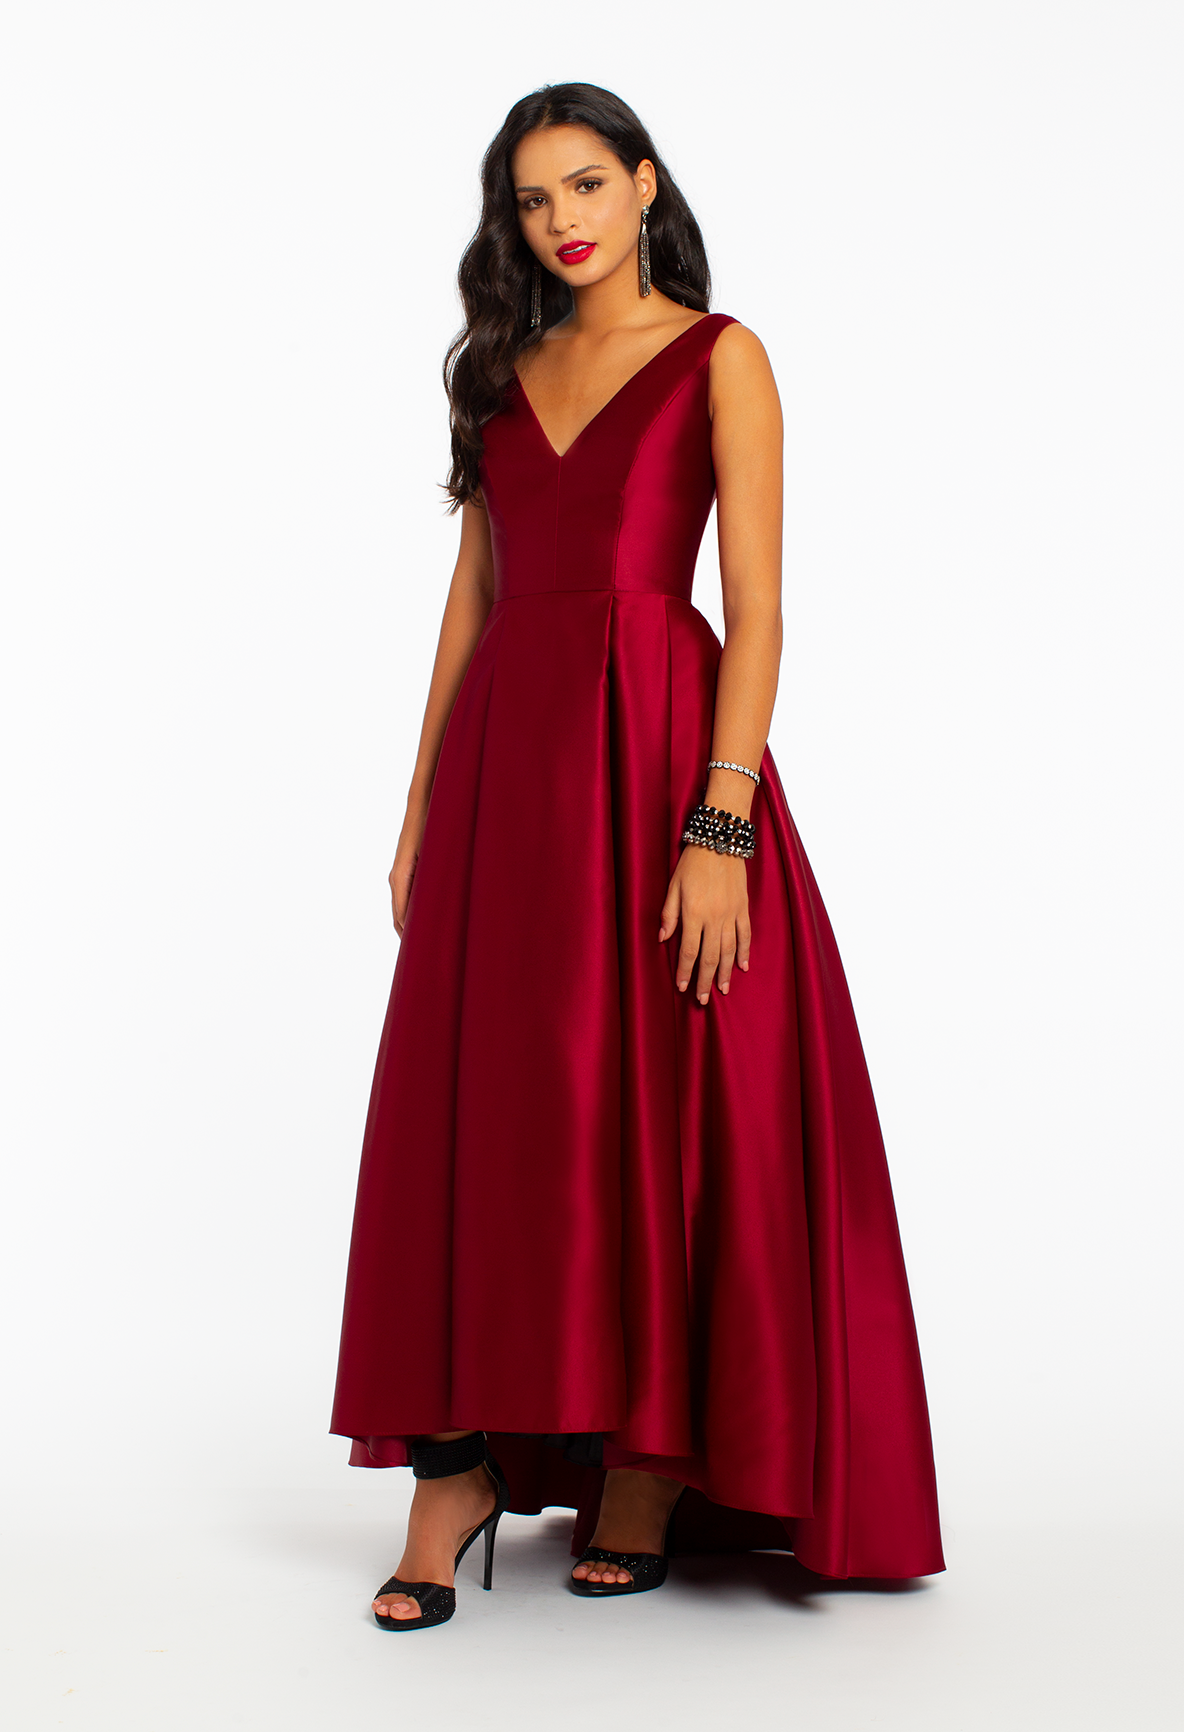 V Neck Satin High Low Ball Gown Dress High Low Ball Gown Dresses Ball Gowns [ 1732 x 1184 Pixel ]